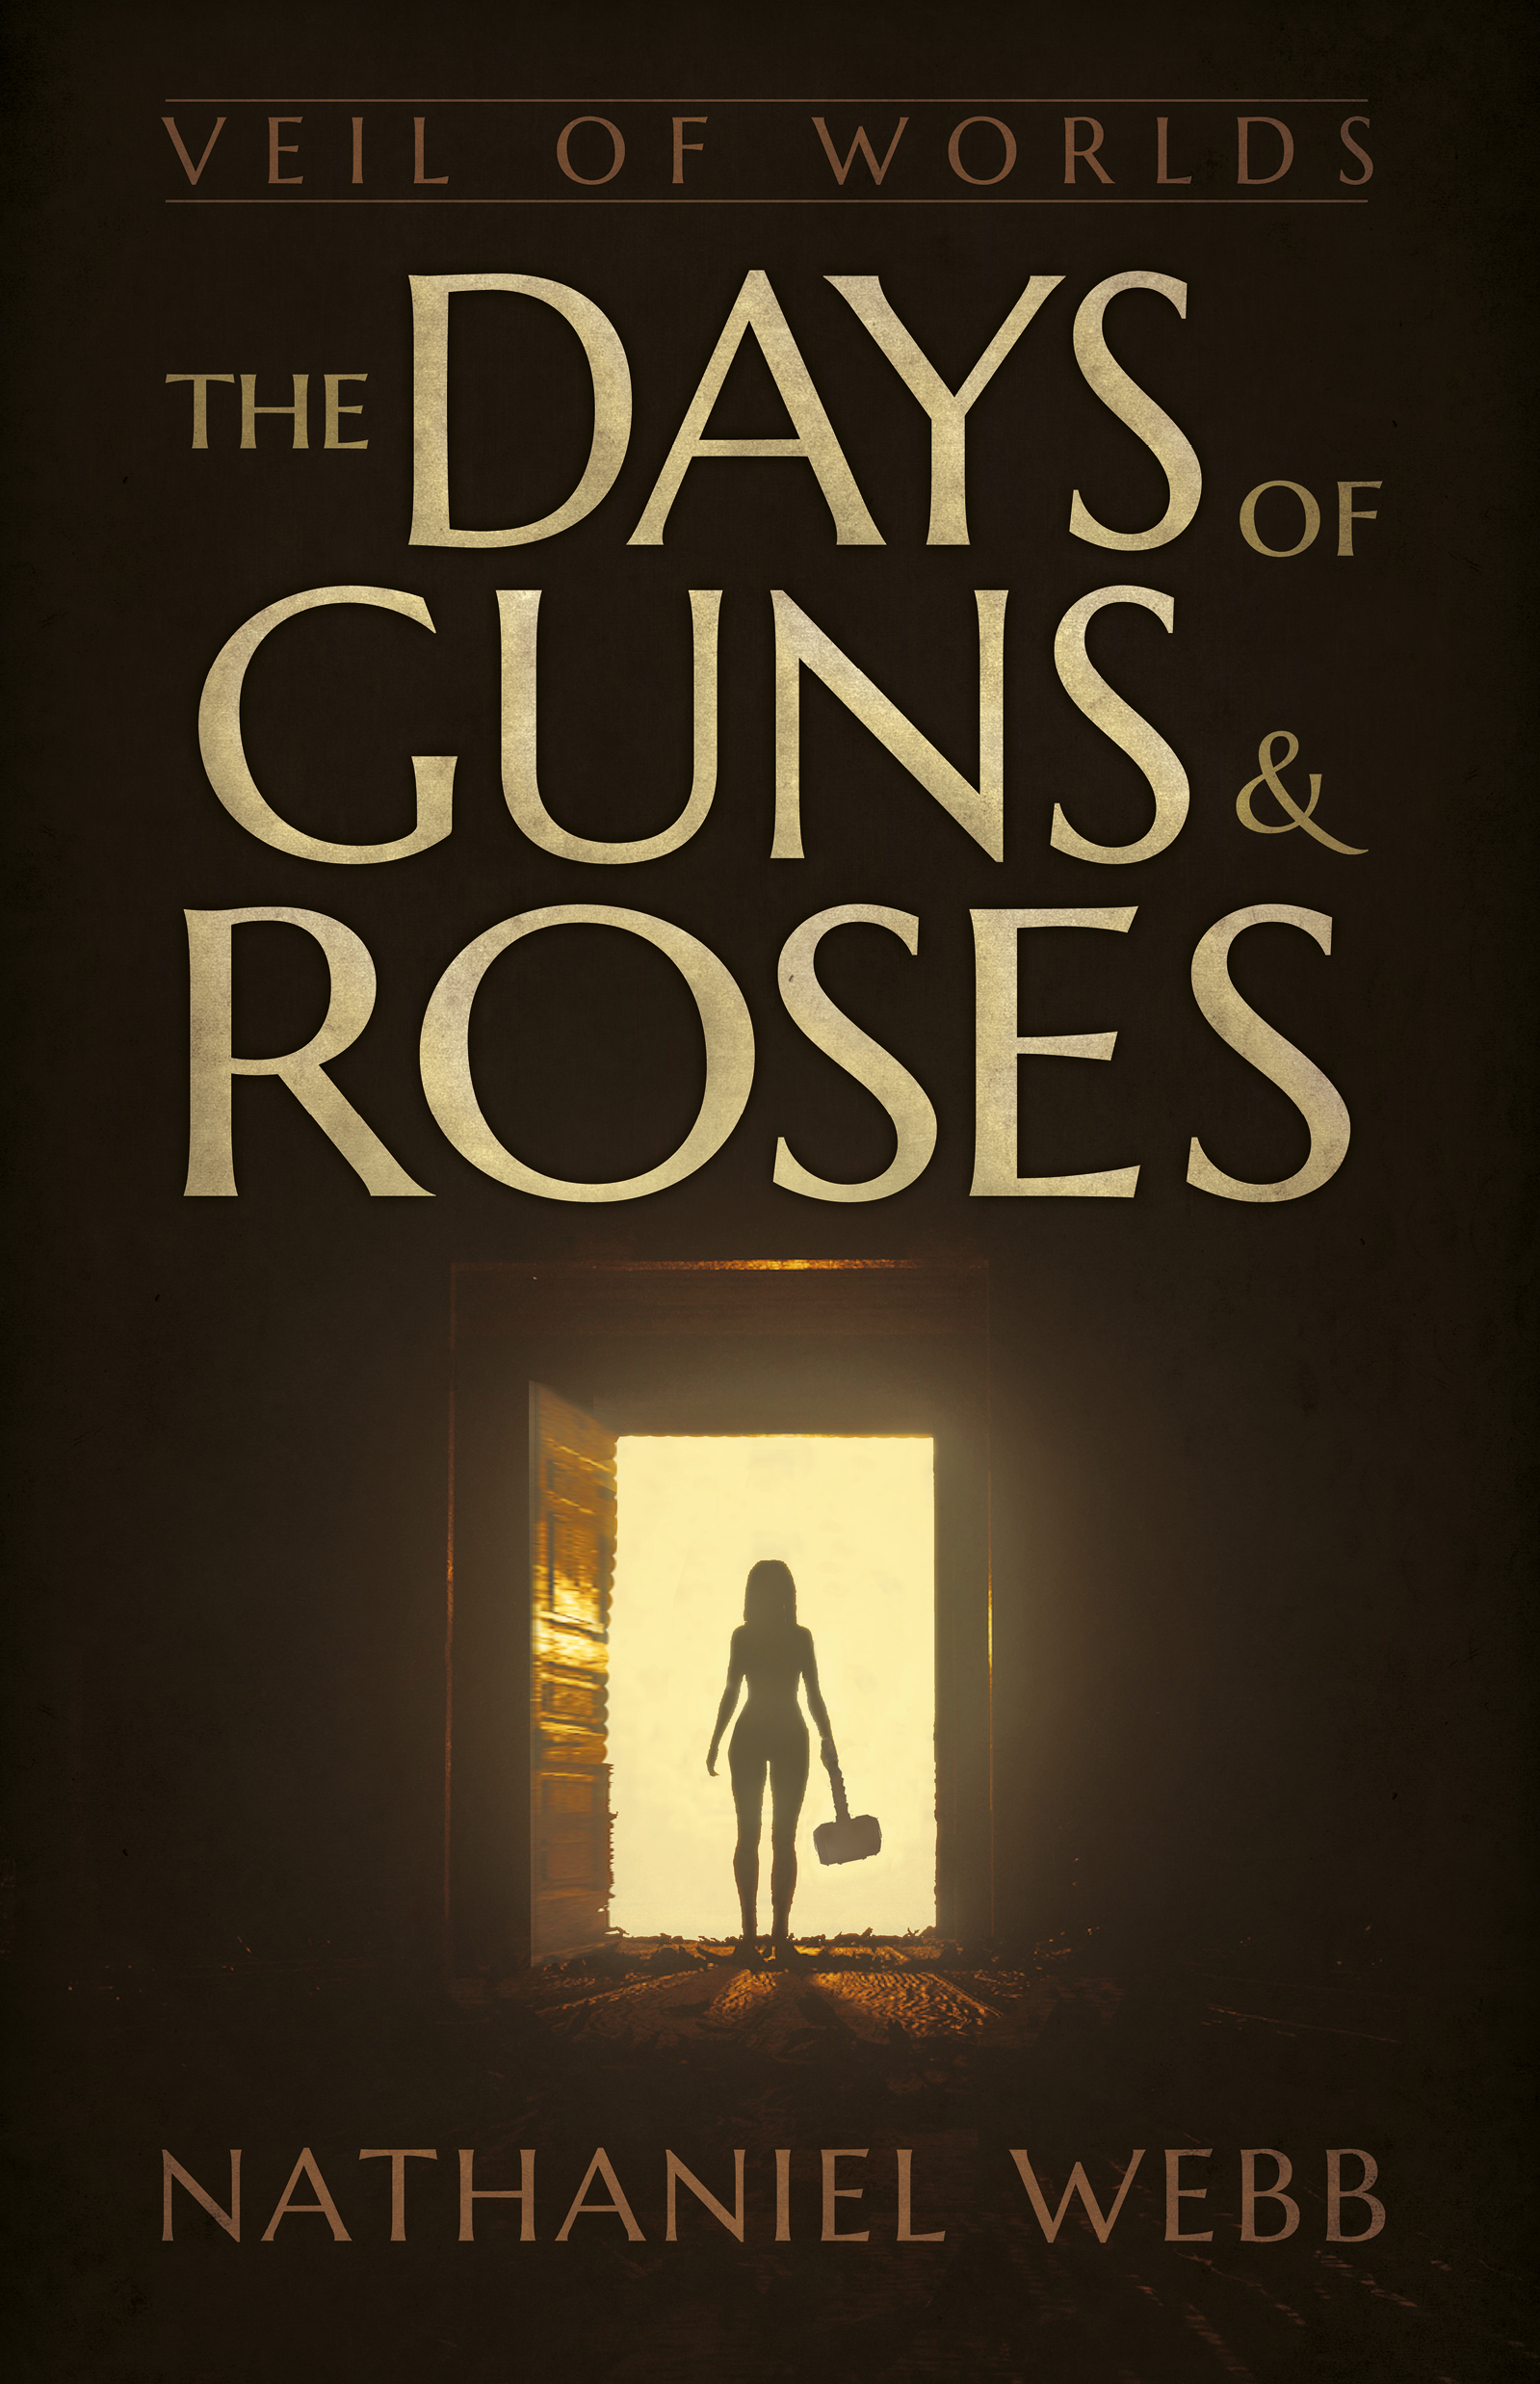 The Days of Guns and Roses Ebook.jpg